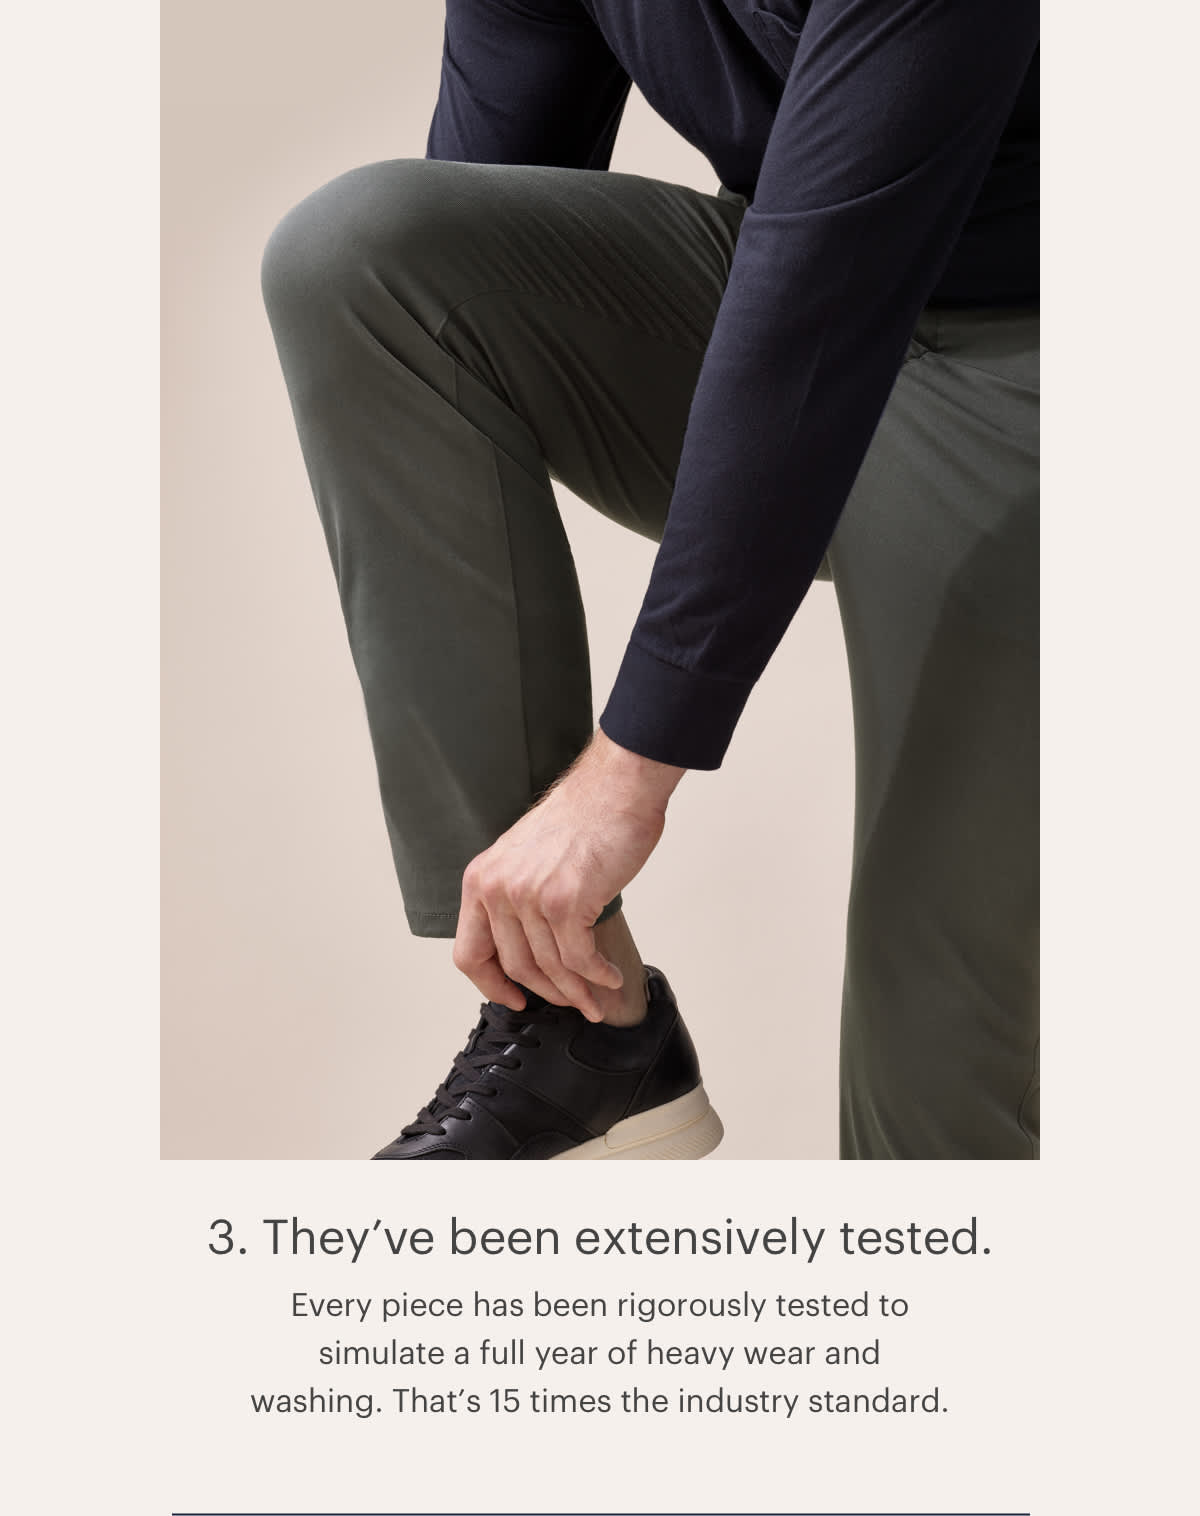 3. They've been extensively tested.